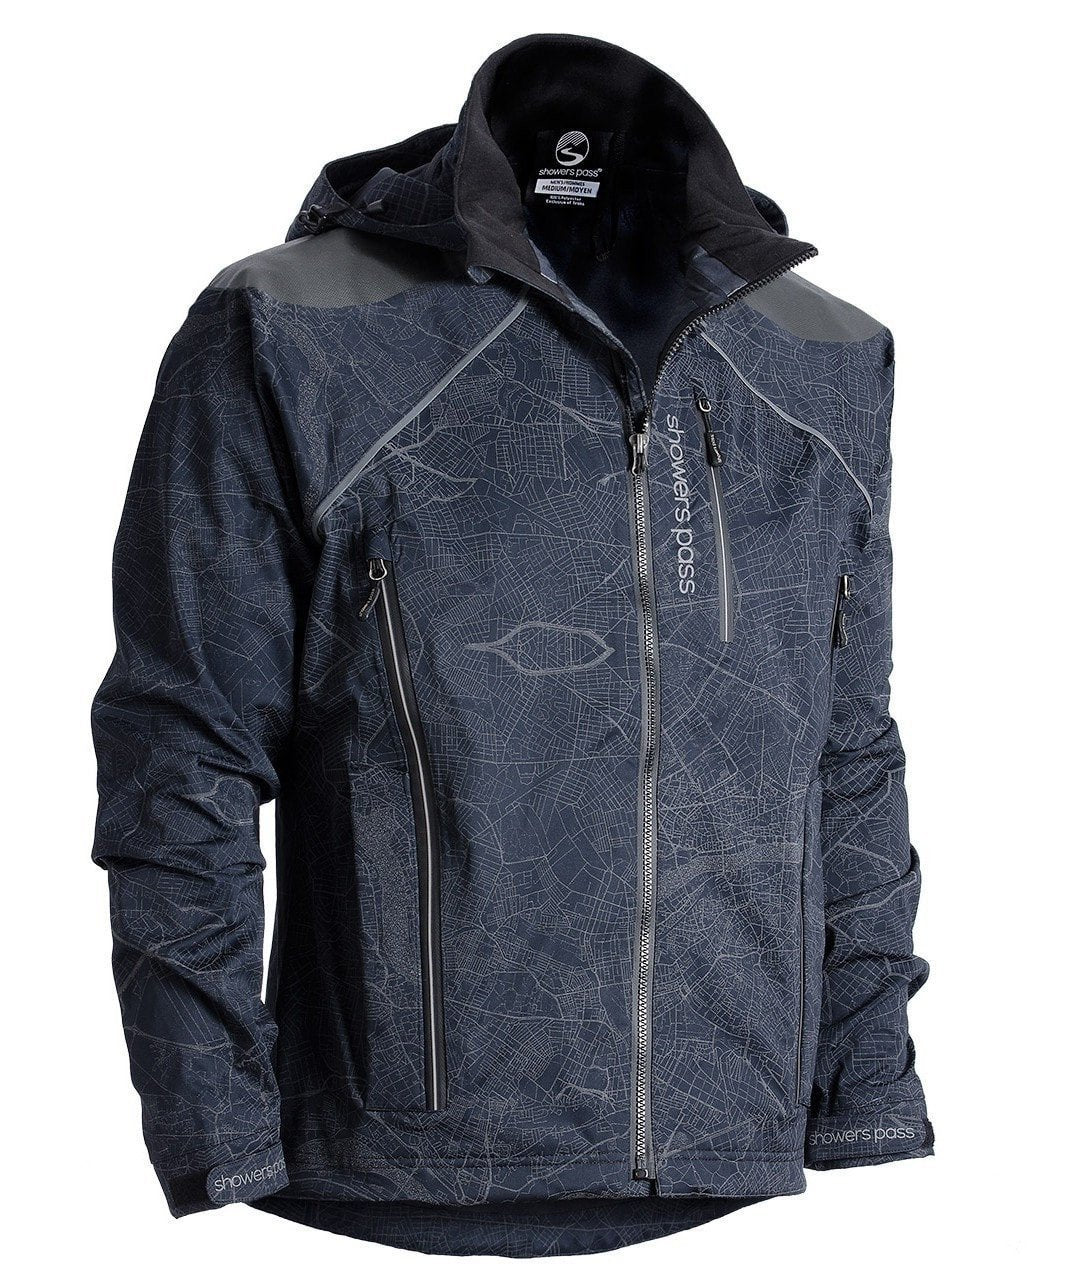 Men's Atlas Jacket